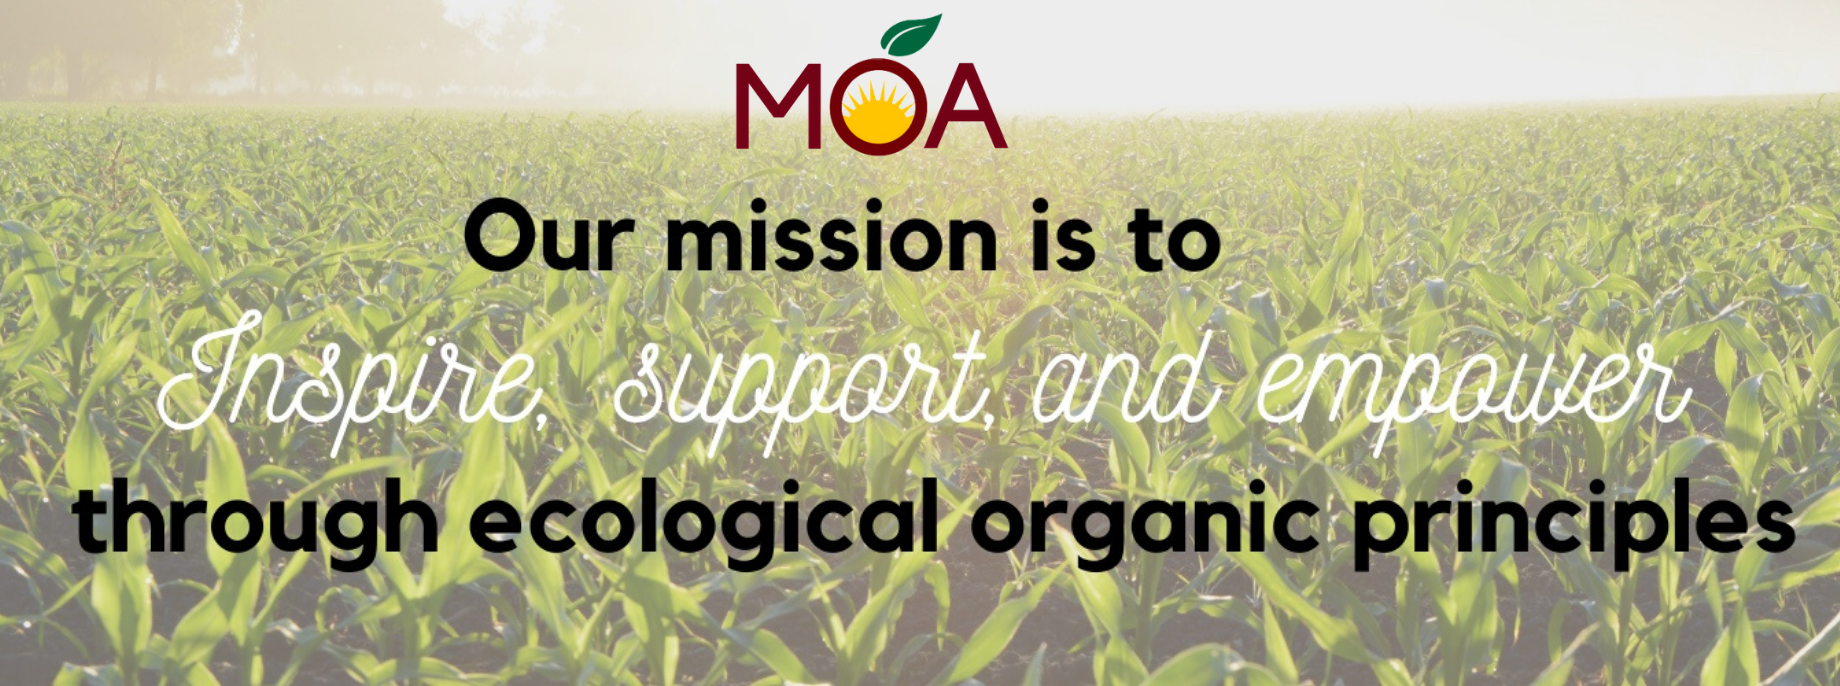 """Missouri Organic Association's Mission"""" To inspire, support, and empower through ecological organic principles."""